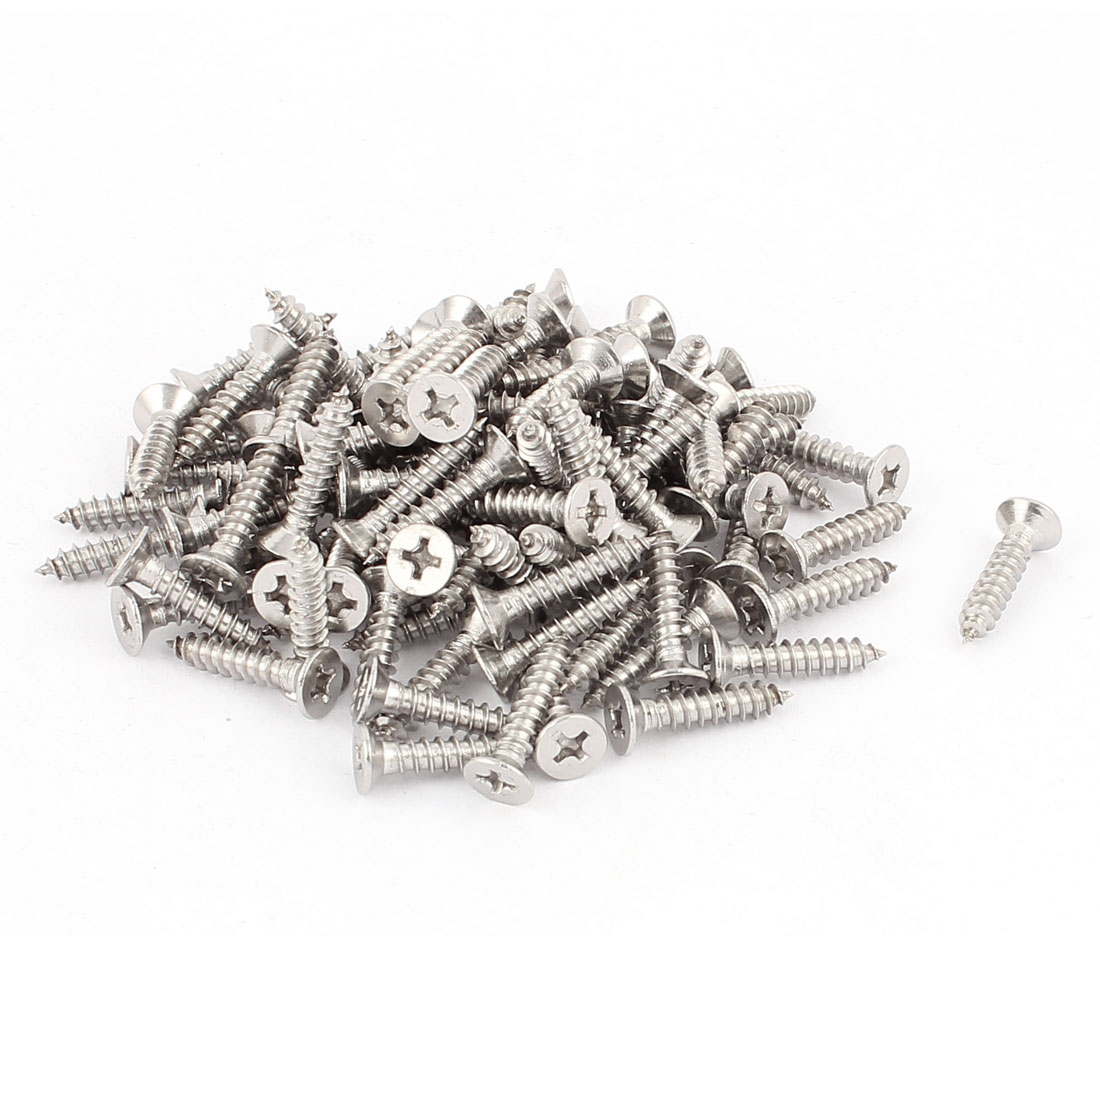 3.9mmx19mm Stainless Steel Flat Head Phillips Self Tapping Screw 100 Pcs